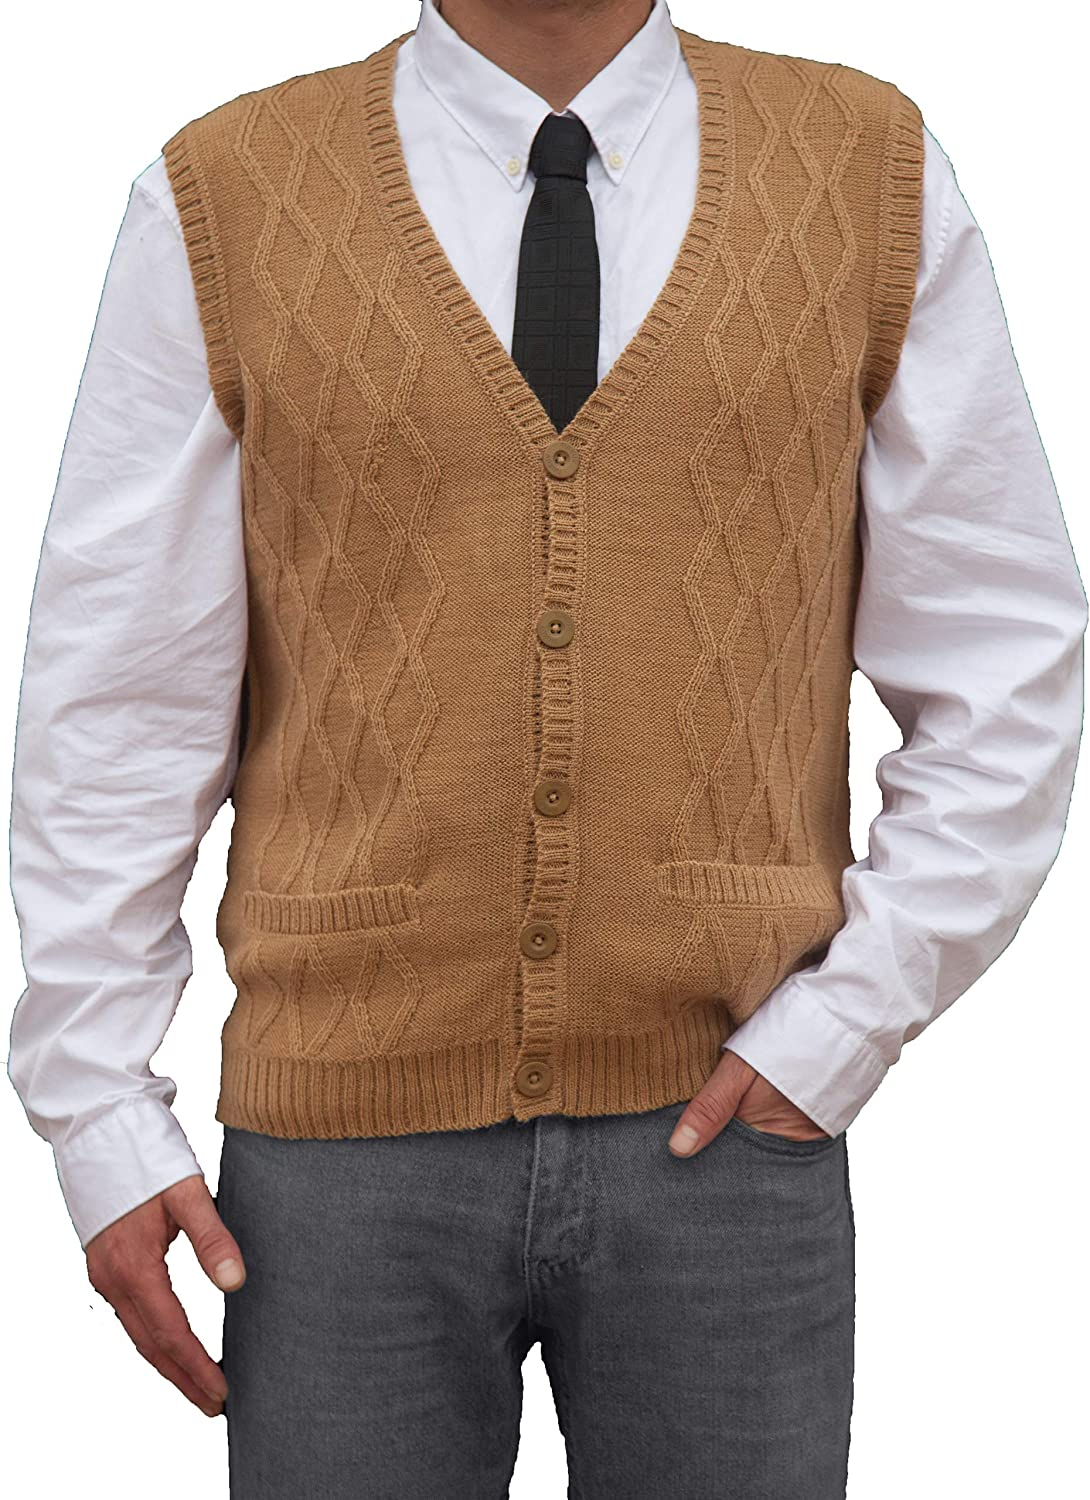 Beige Camel Peruvian Alpaca Wool Vest for Men Basic V Neck Button Up Cardigan Sweater TINKUY PERU